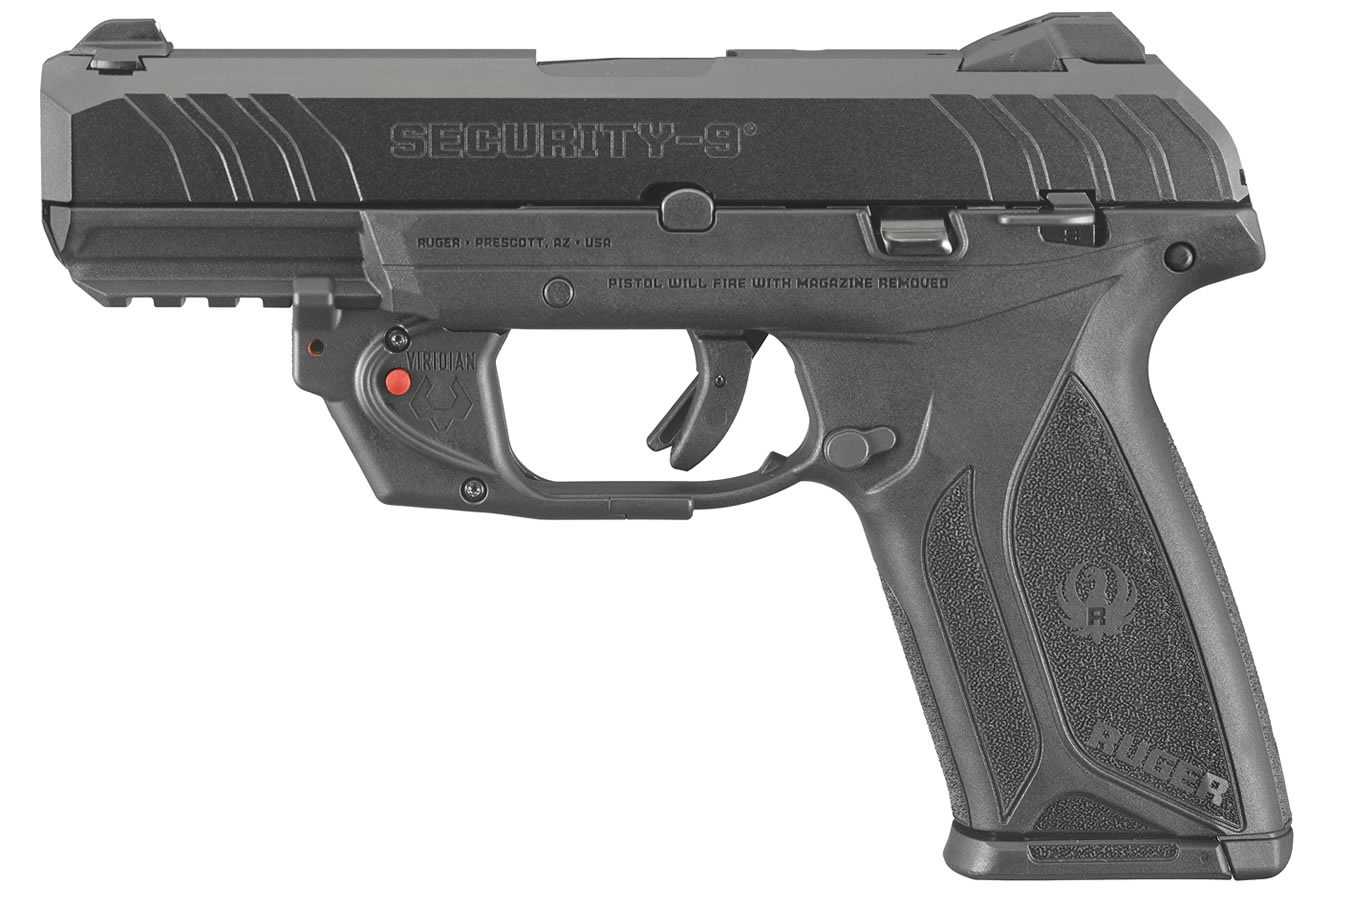 Security-9 9mm Pistol with Viridian E-Series Laser